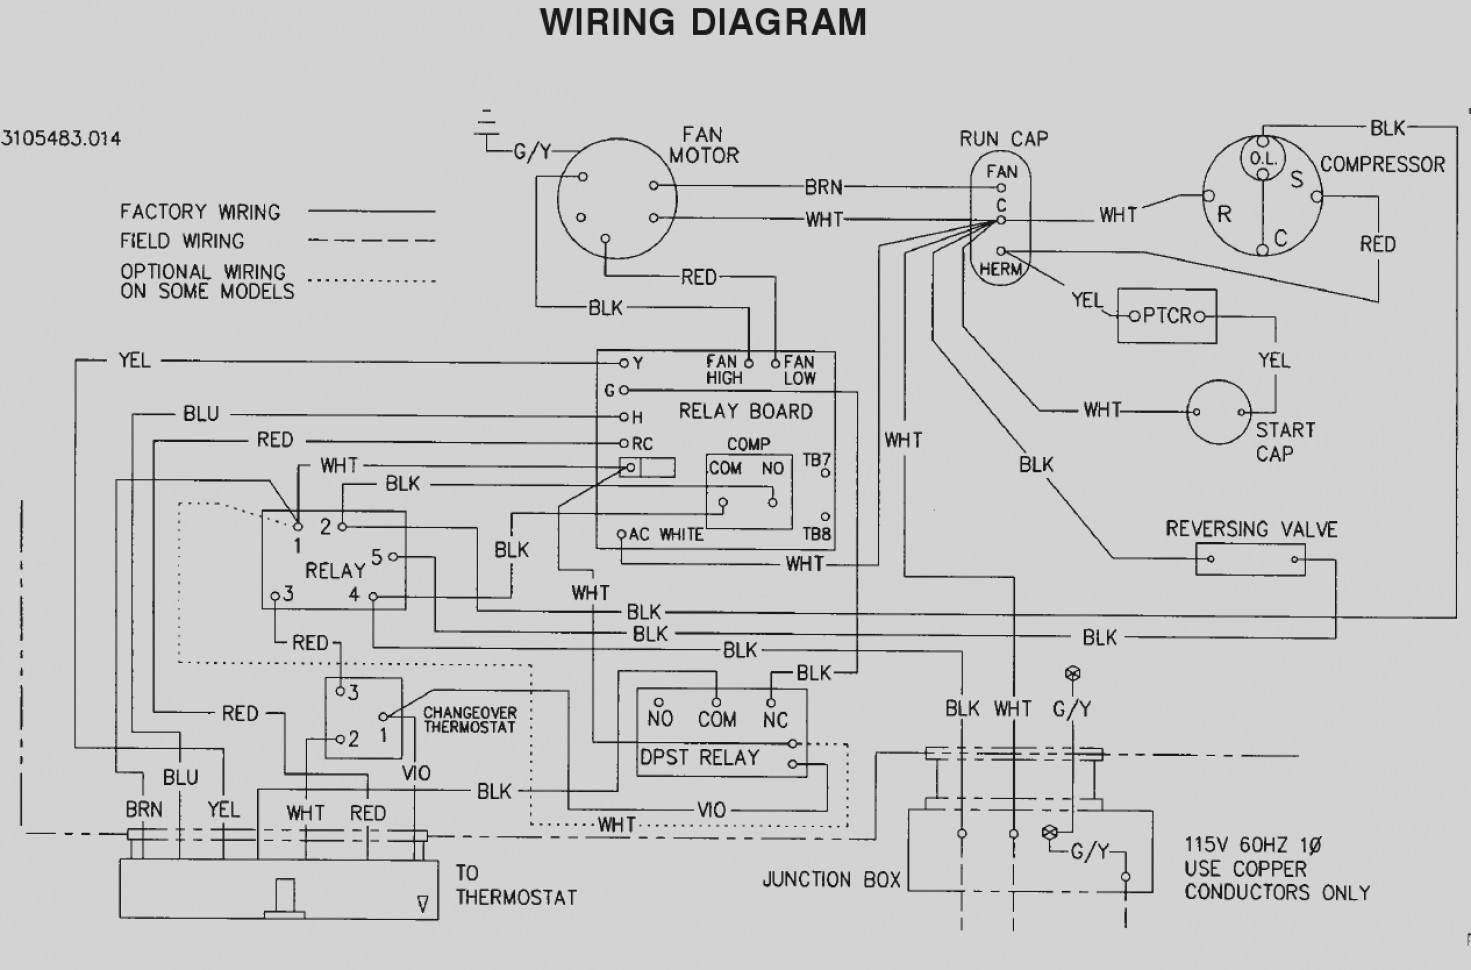 WRG-9159] Fan Coil Thermostat Wiring Diagram